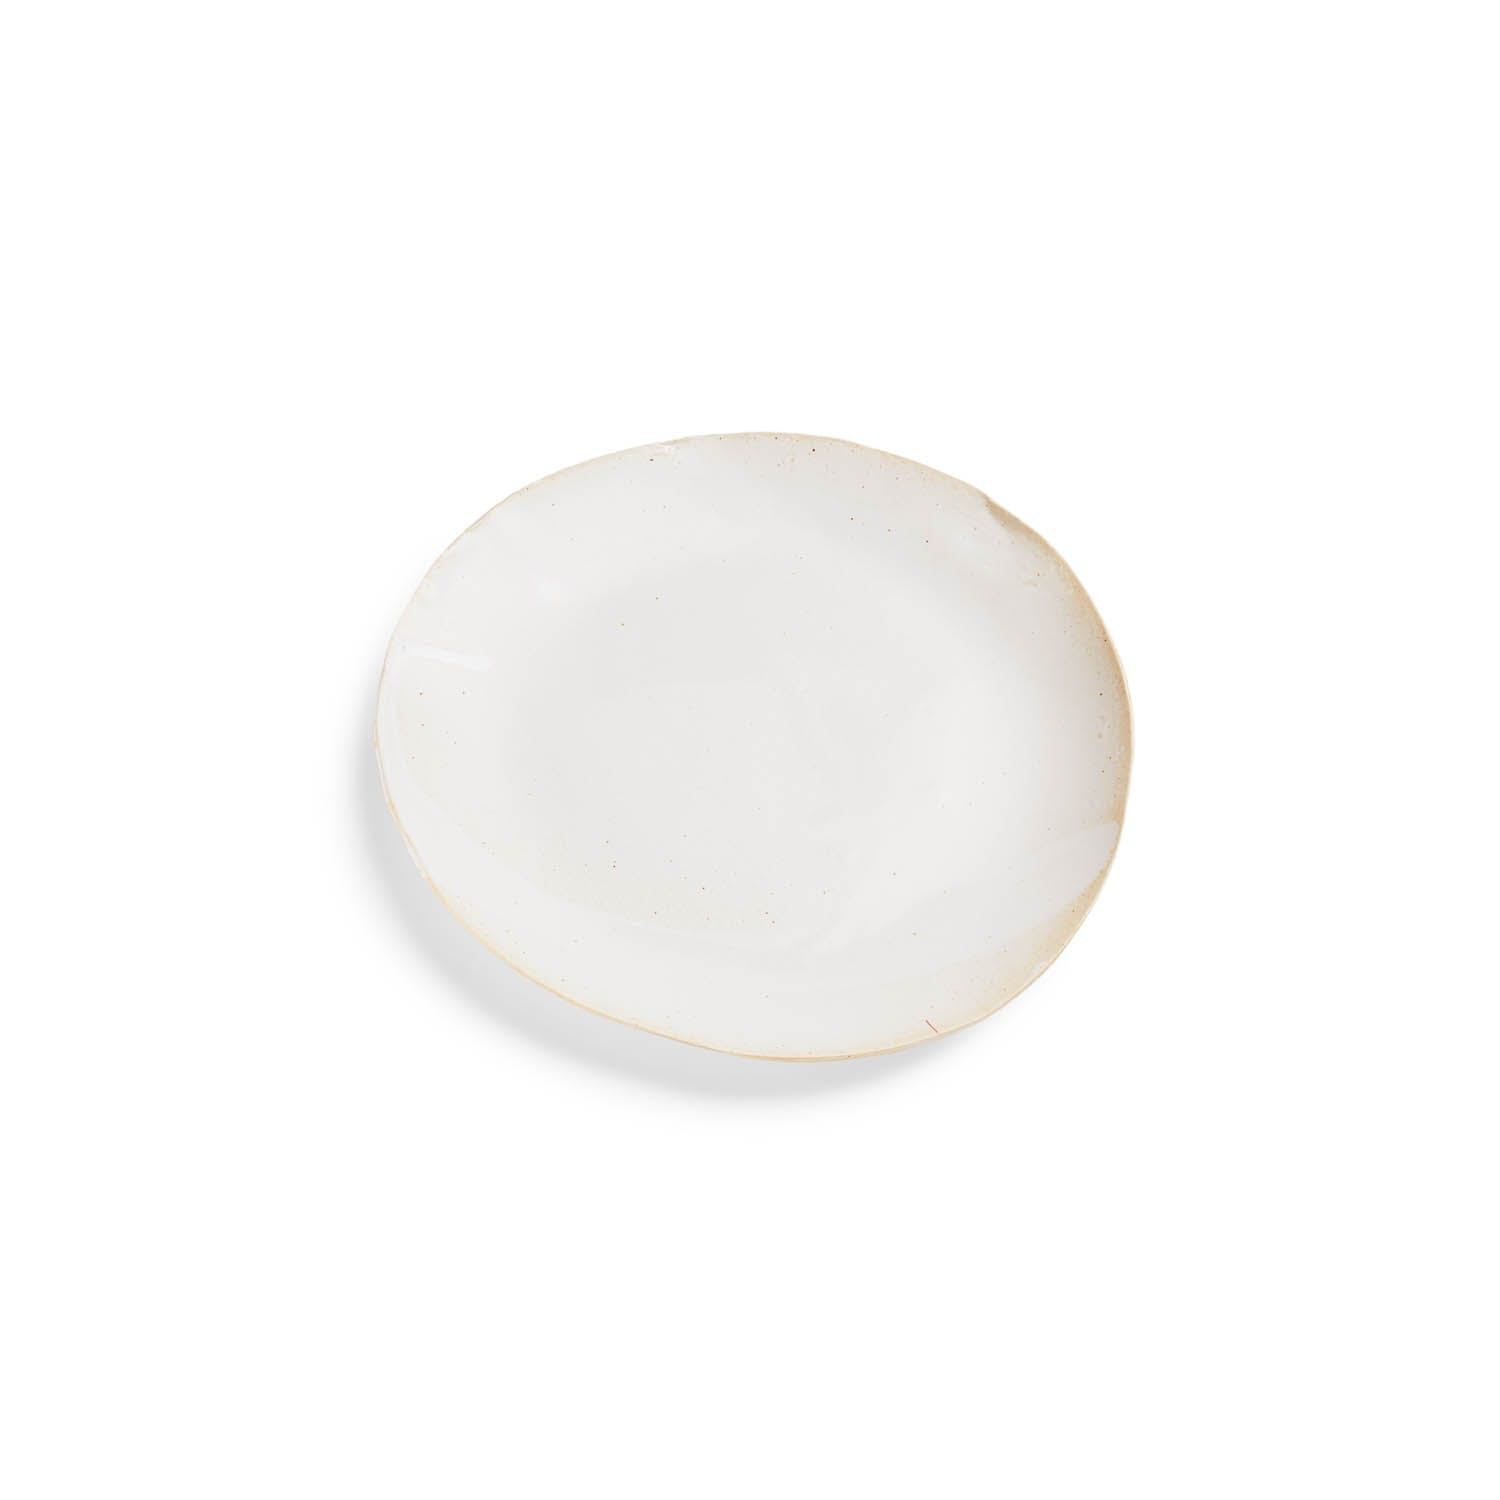 Jan Burtz Porcelain Dinner Plate White